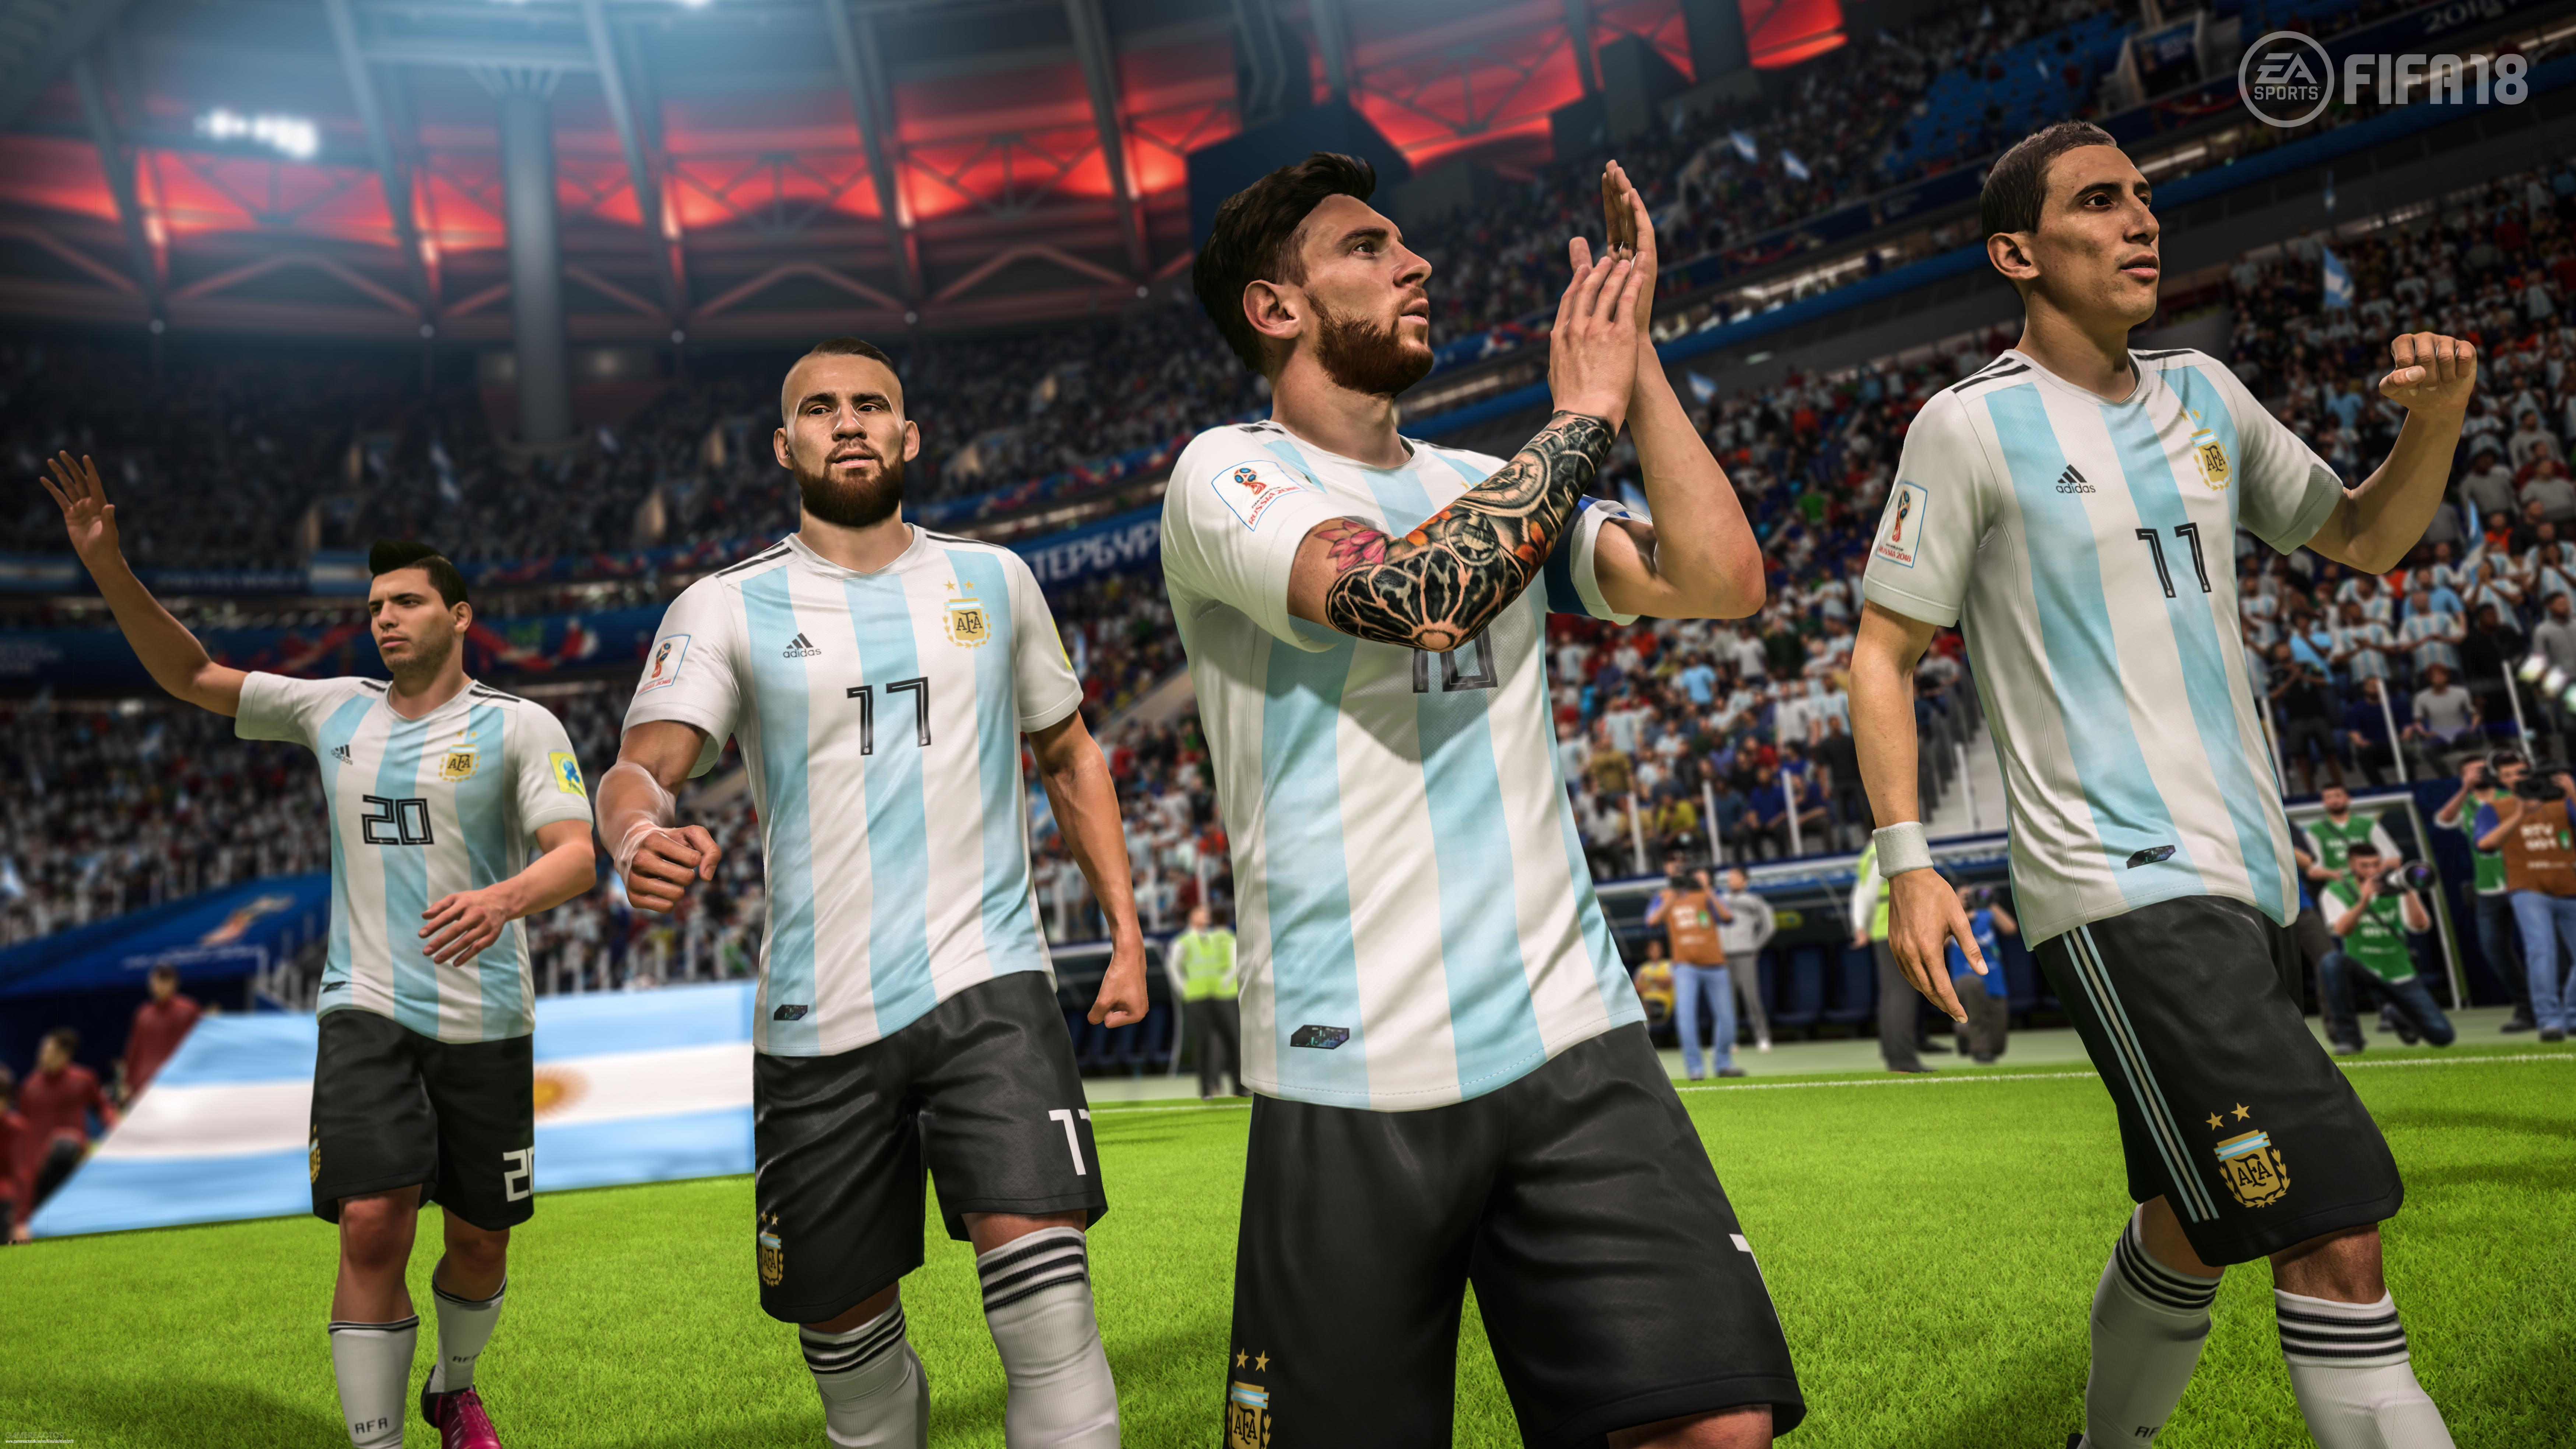 2018 Fifa World Cup Russia Review Gamereactor 18 Ps4